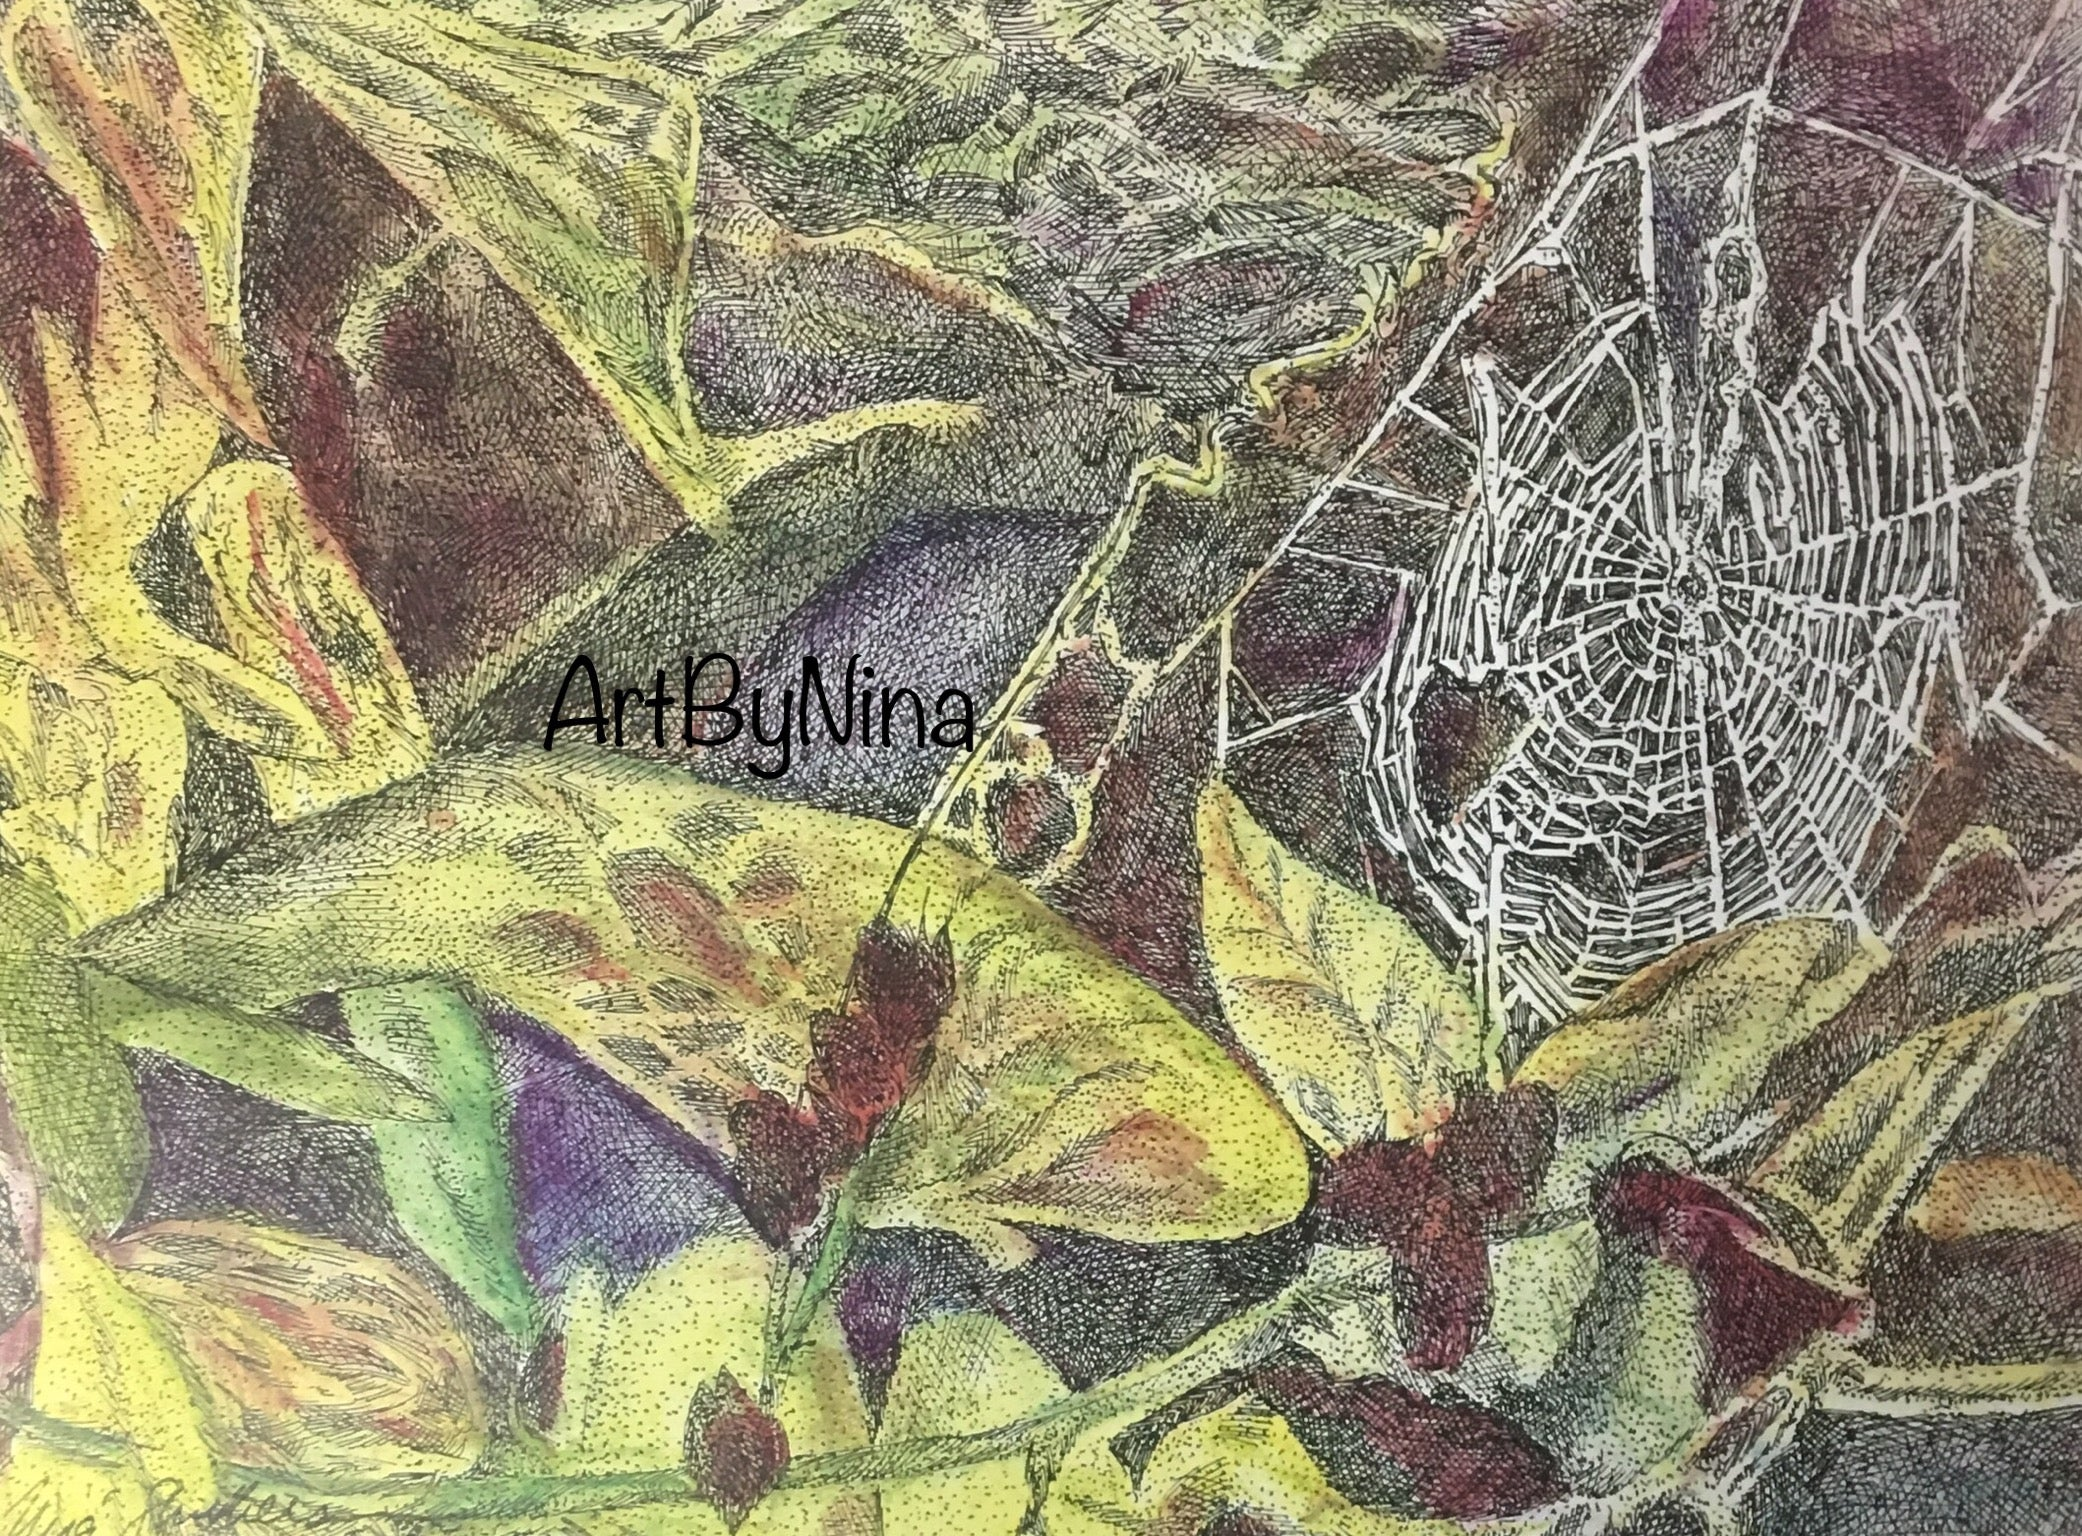 Nature Print - Spider Web #140